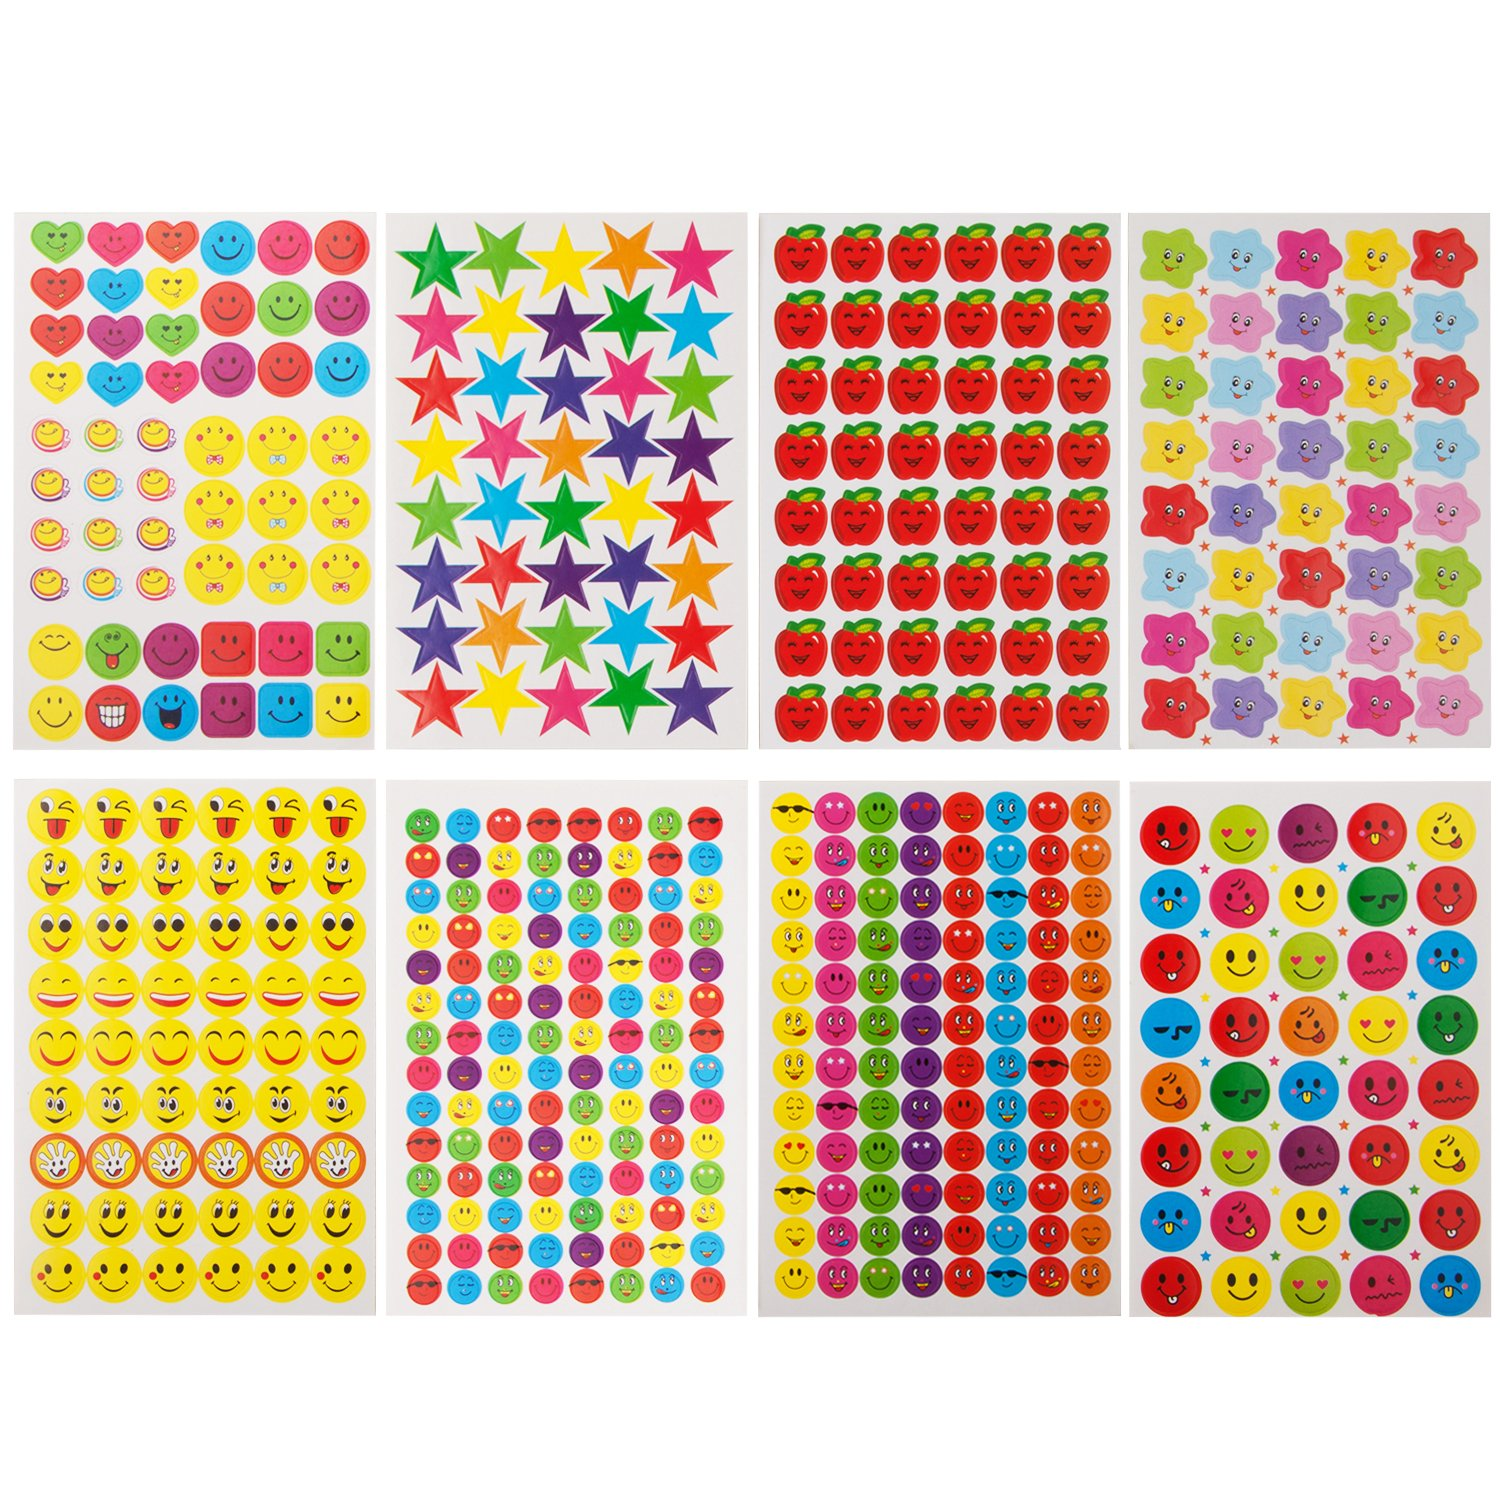 Amazon com super reward stickers for teachers 4900 total teacher stickers great value for parents school or classroom plus free sample pack